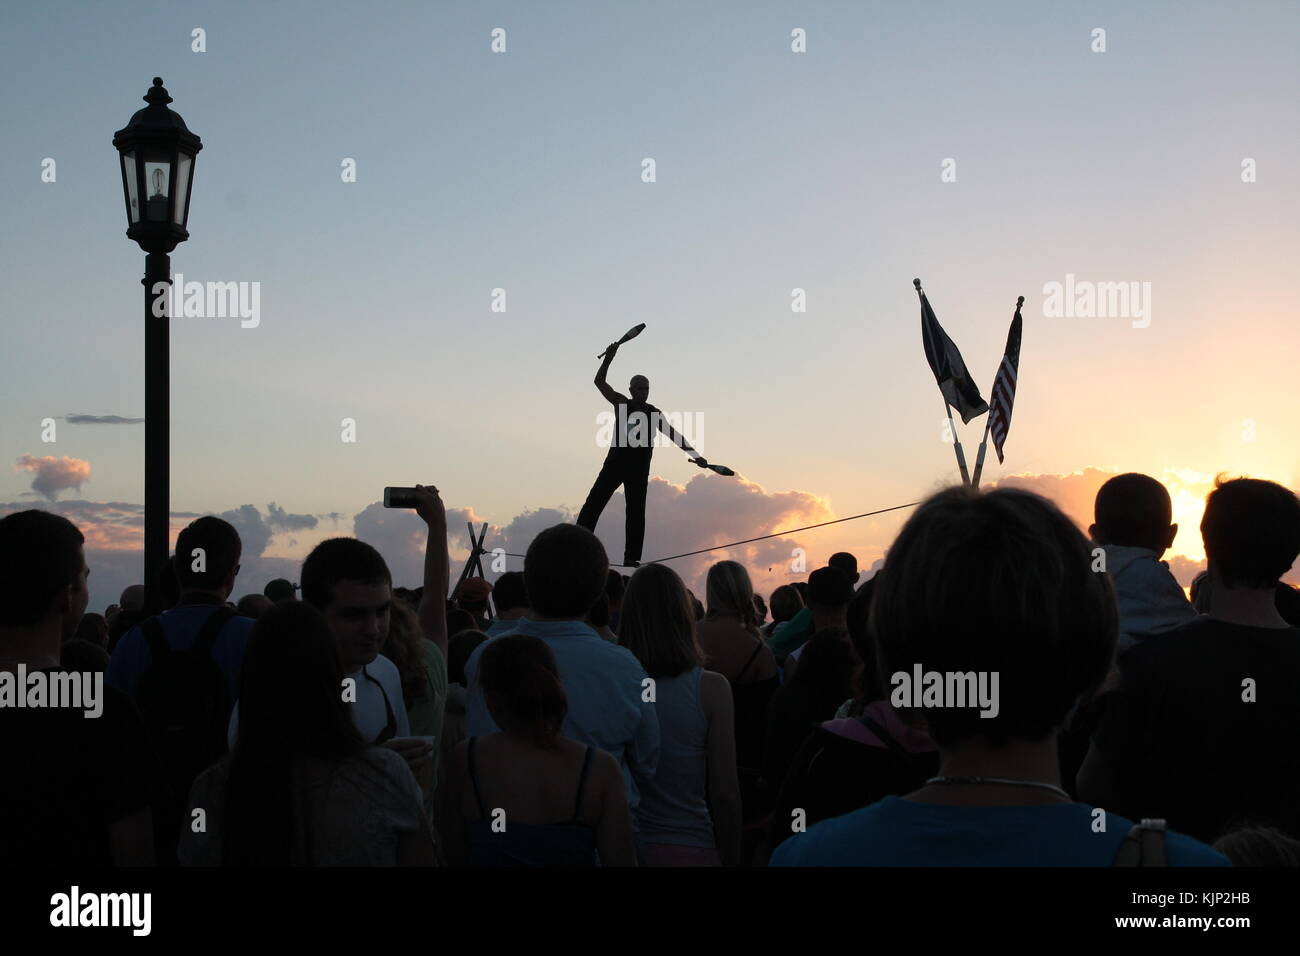 Acrobat  walking on a wire at sunset in Mallory Square, Key West, Florida. - Stock Image